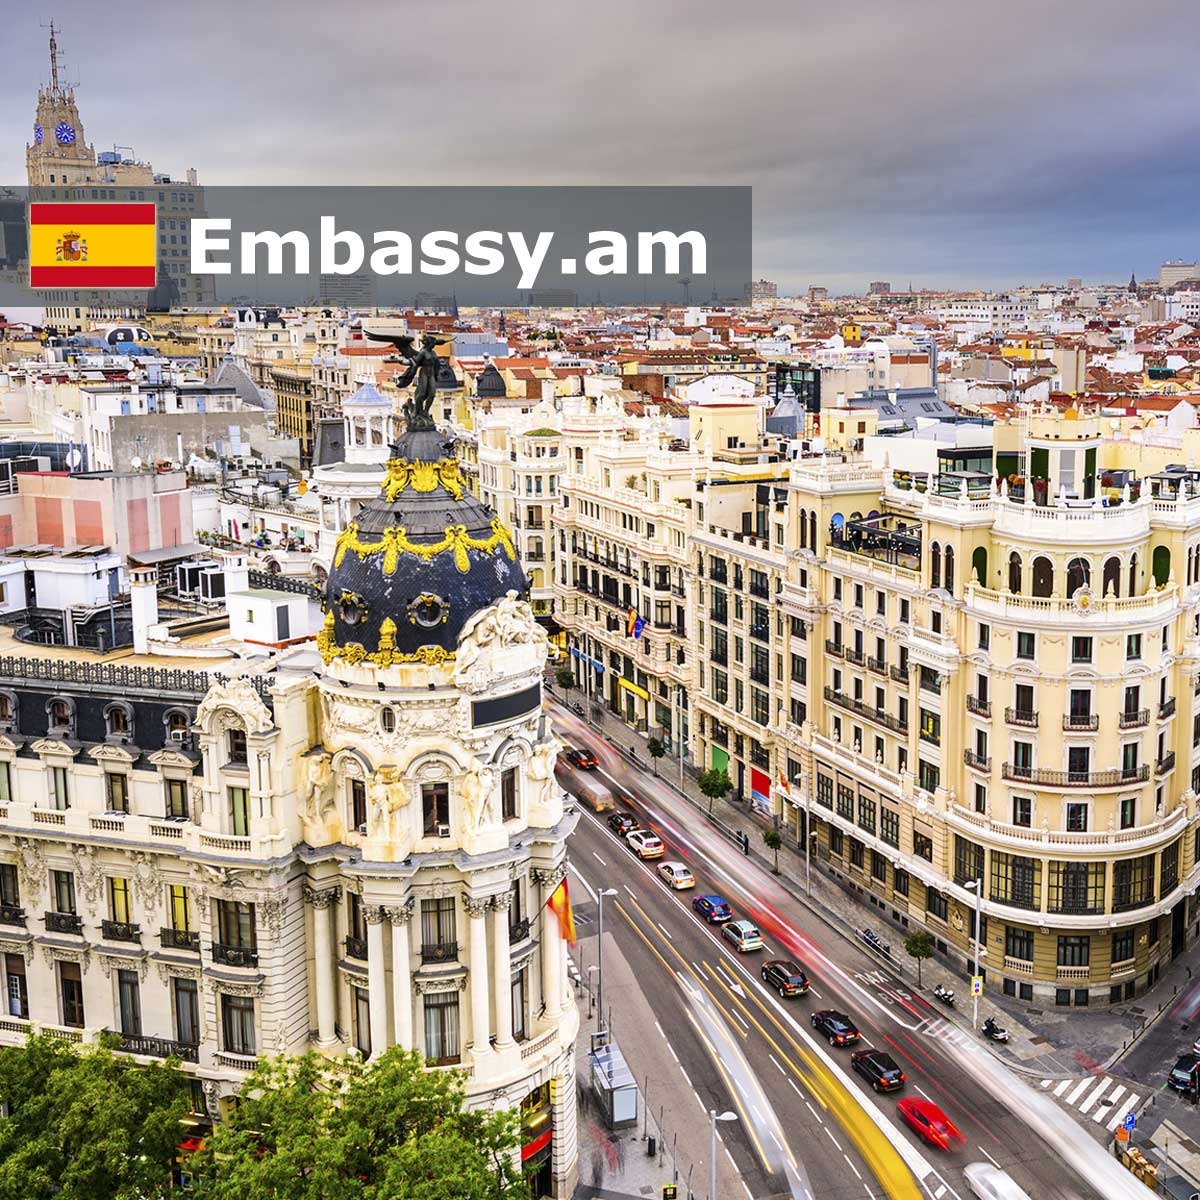 Madrid - Hotels in Spain - Embassy.am